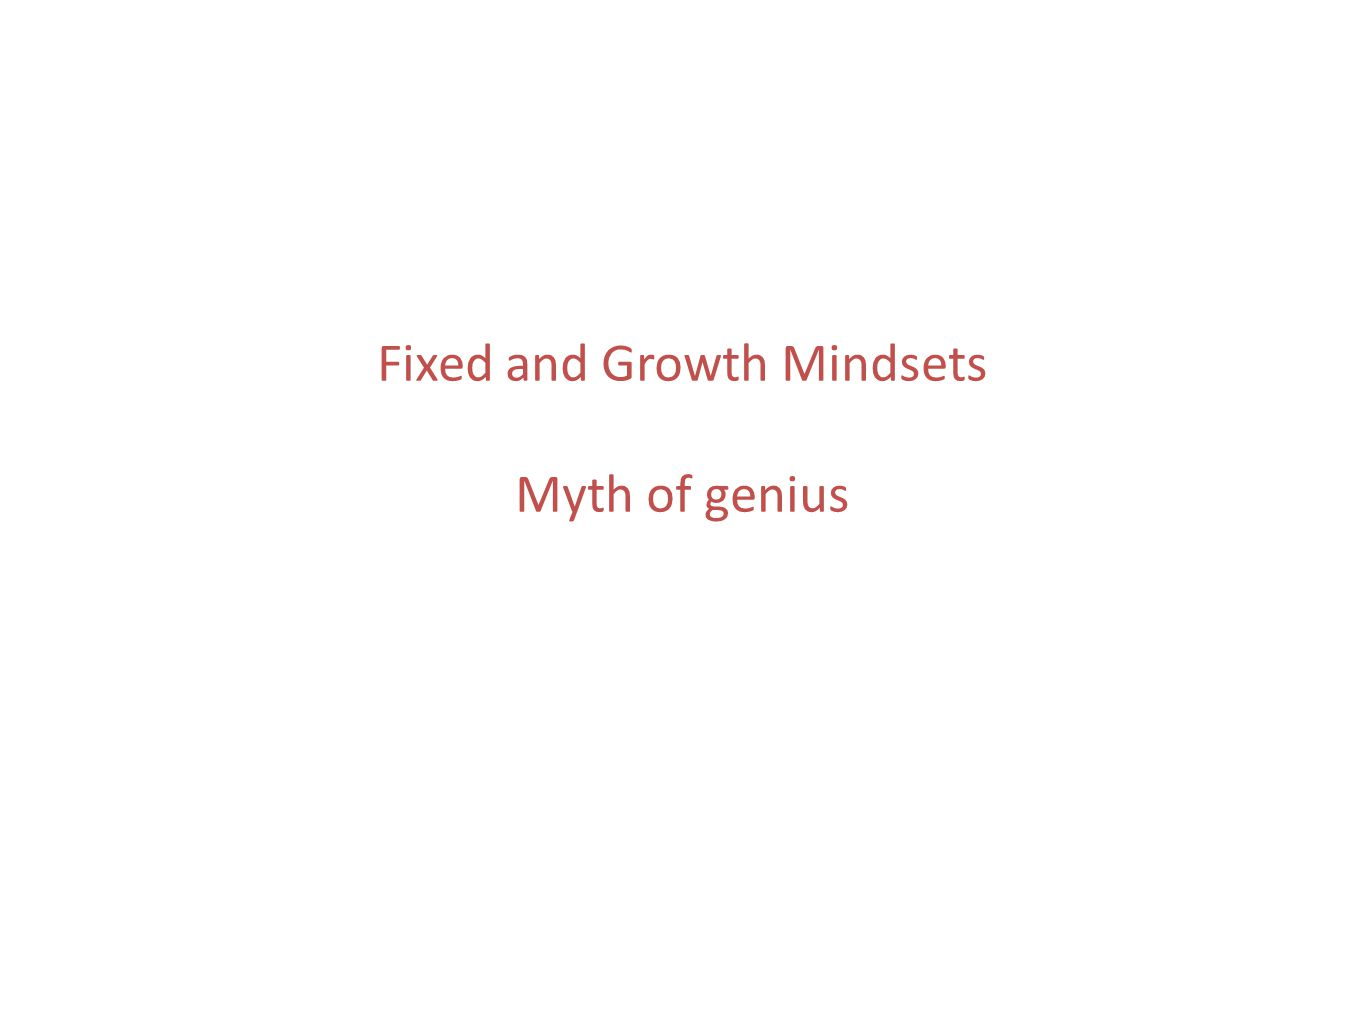 Fixed and Growth Mindsets Myth of genius